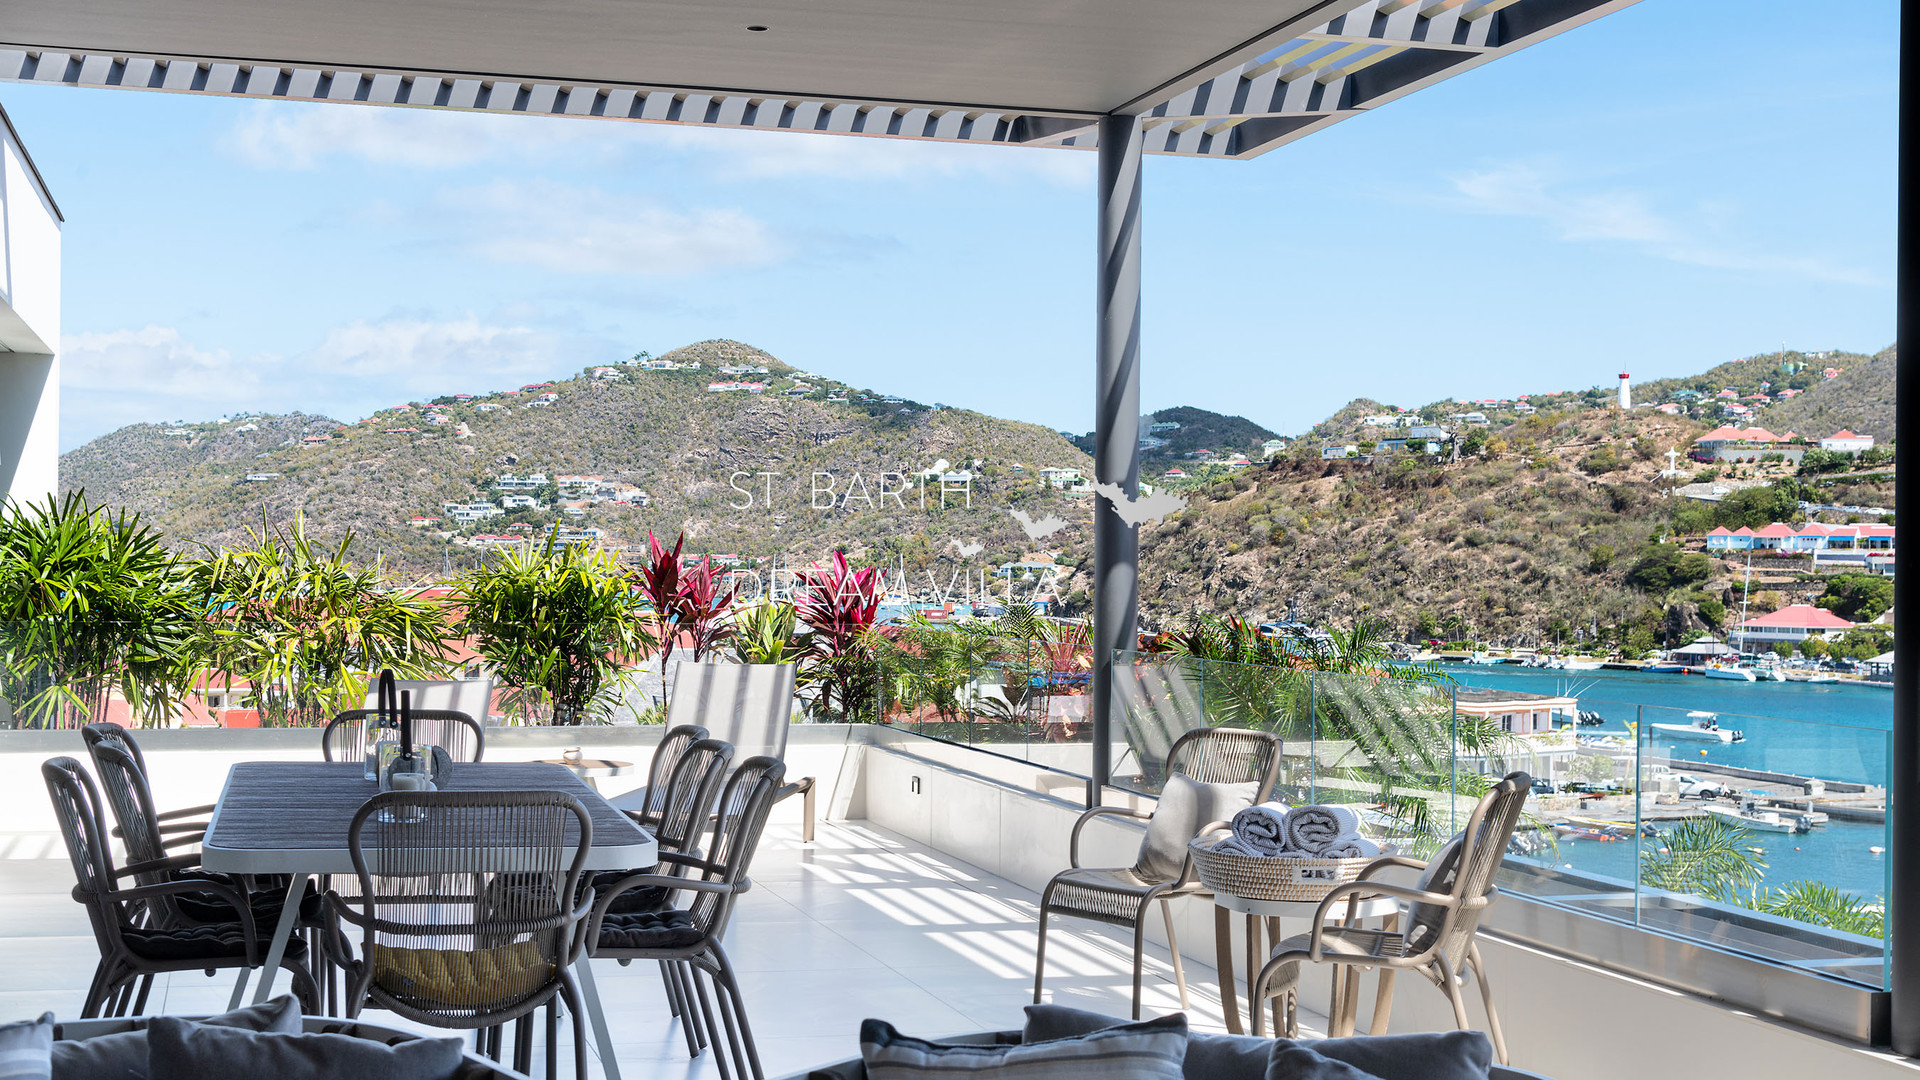 A-OUTDOOR (1)-1800-StBarthDreamVilla-Ren